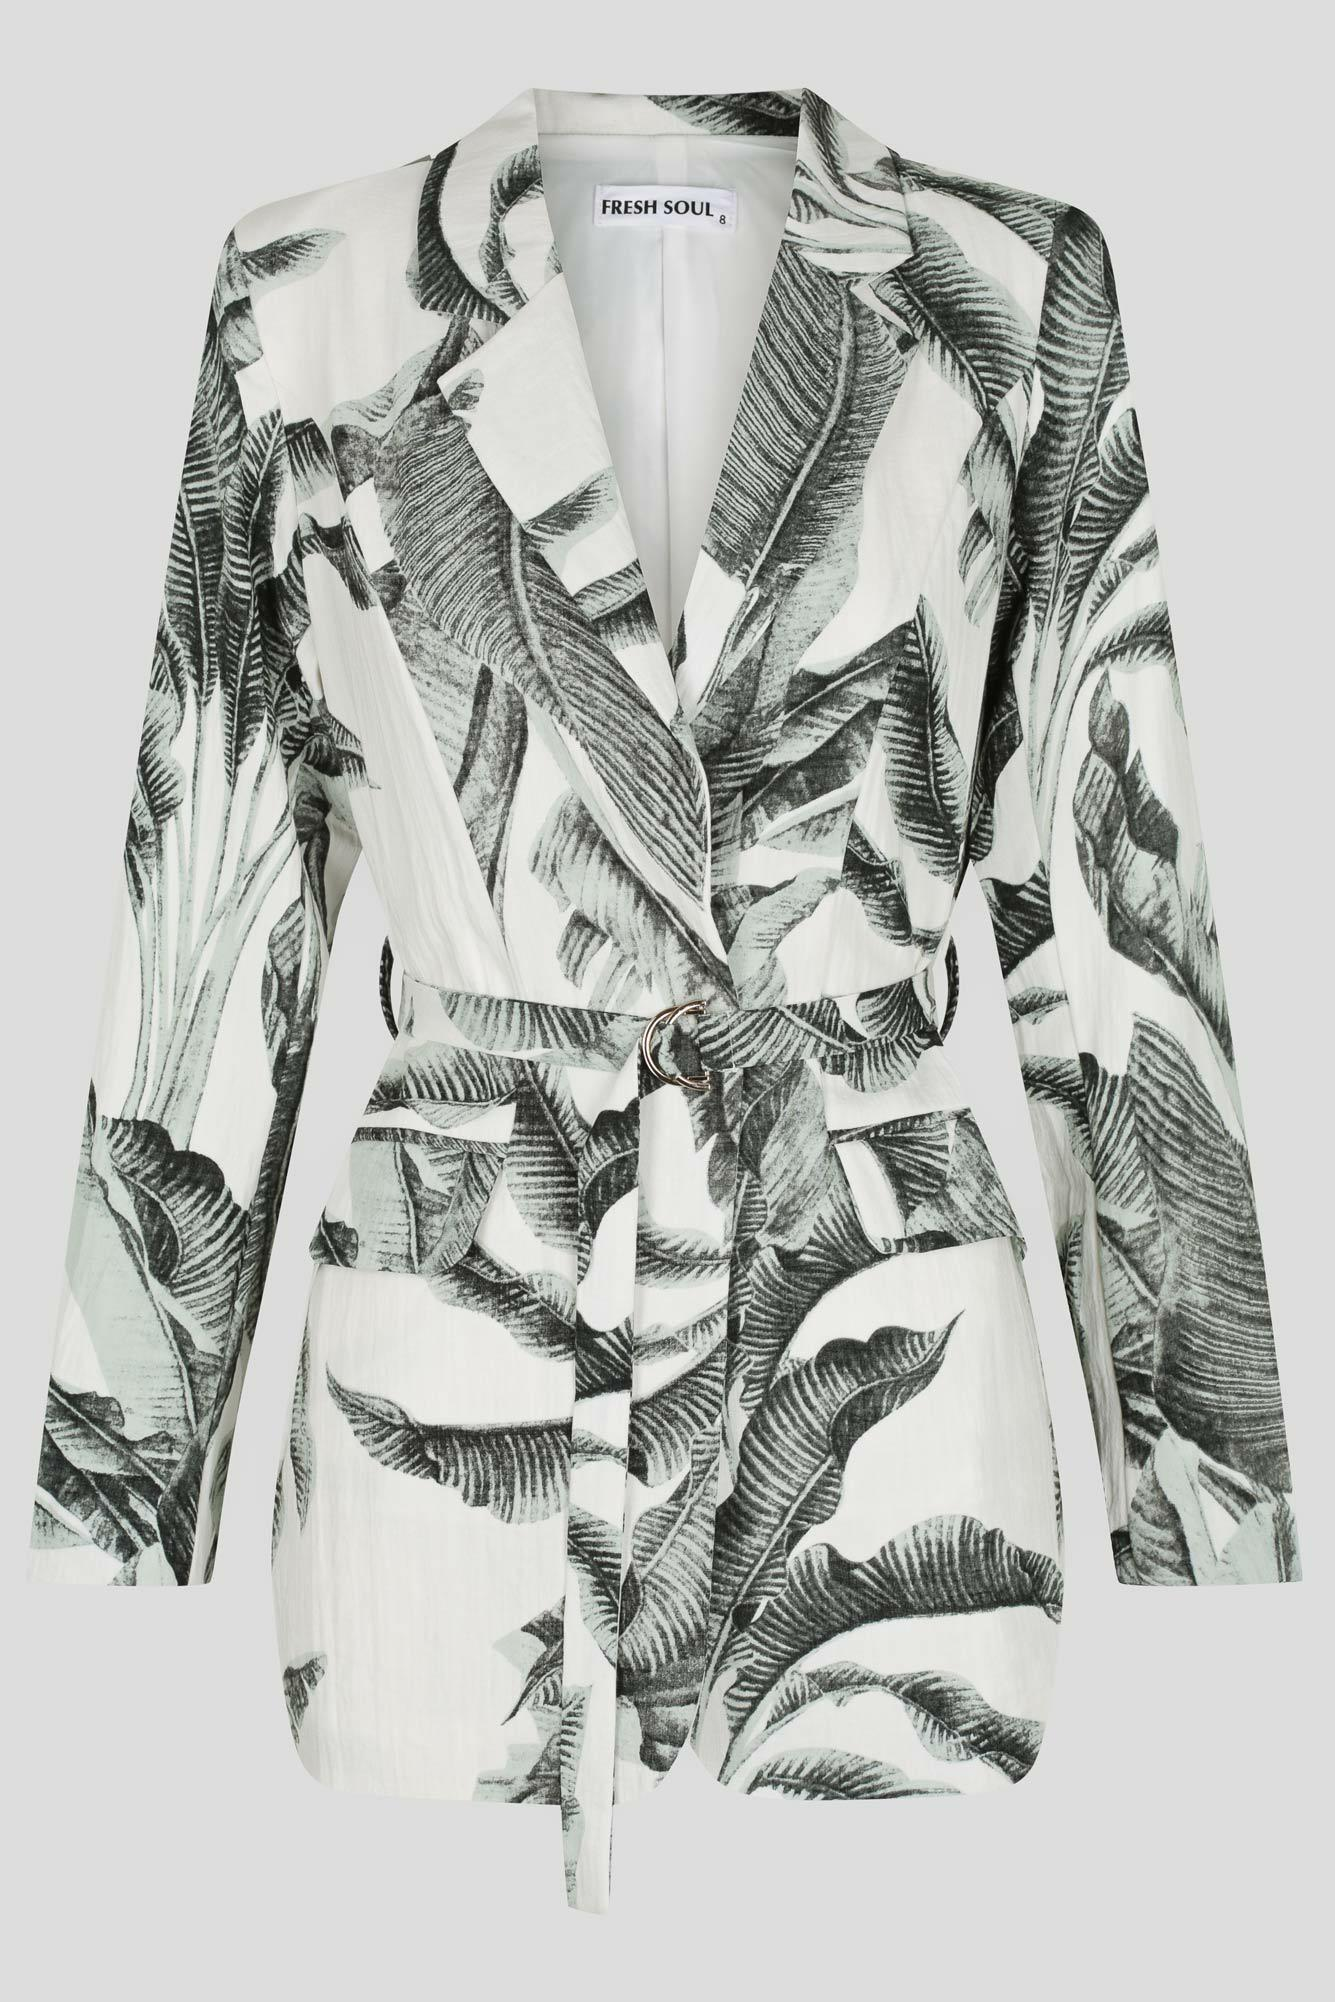 Palma Jacket Ladies Jacket Colour is Green Palm Print